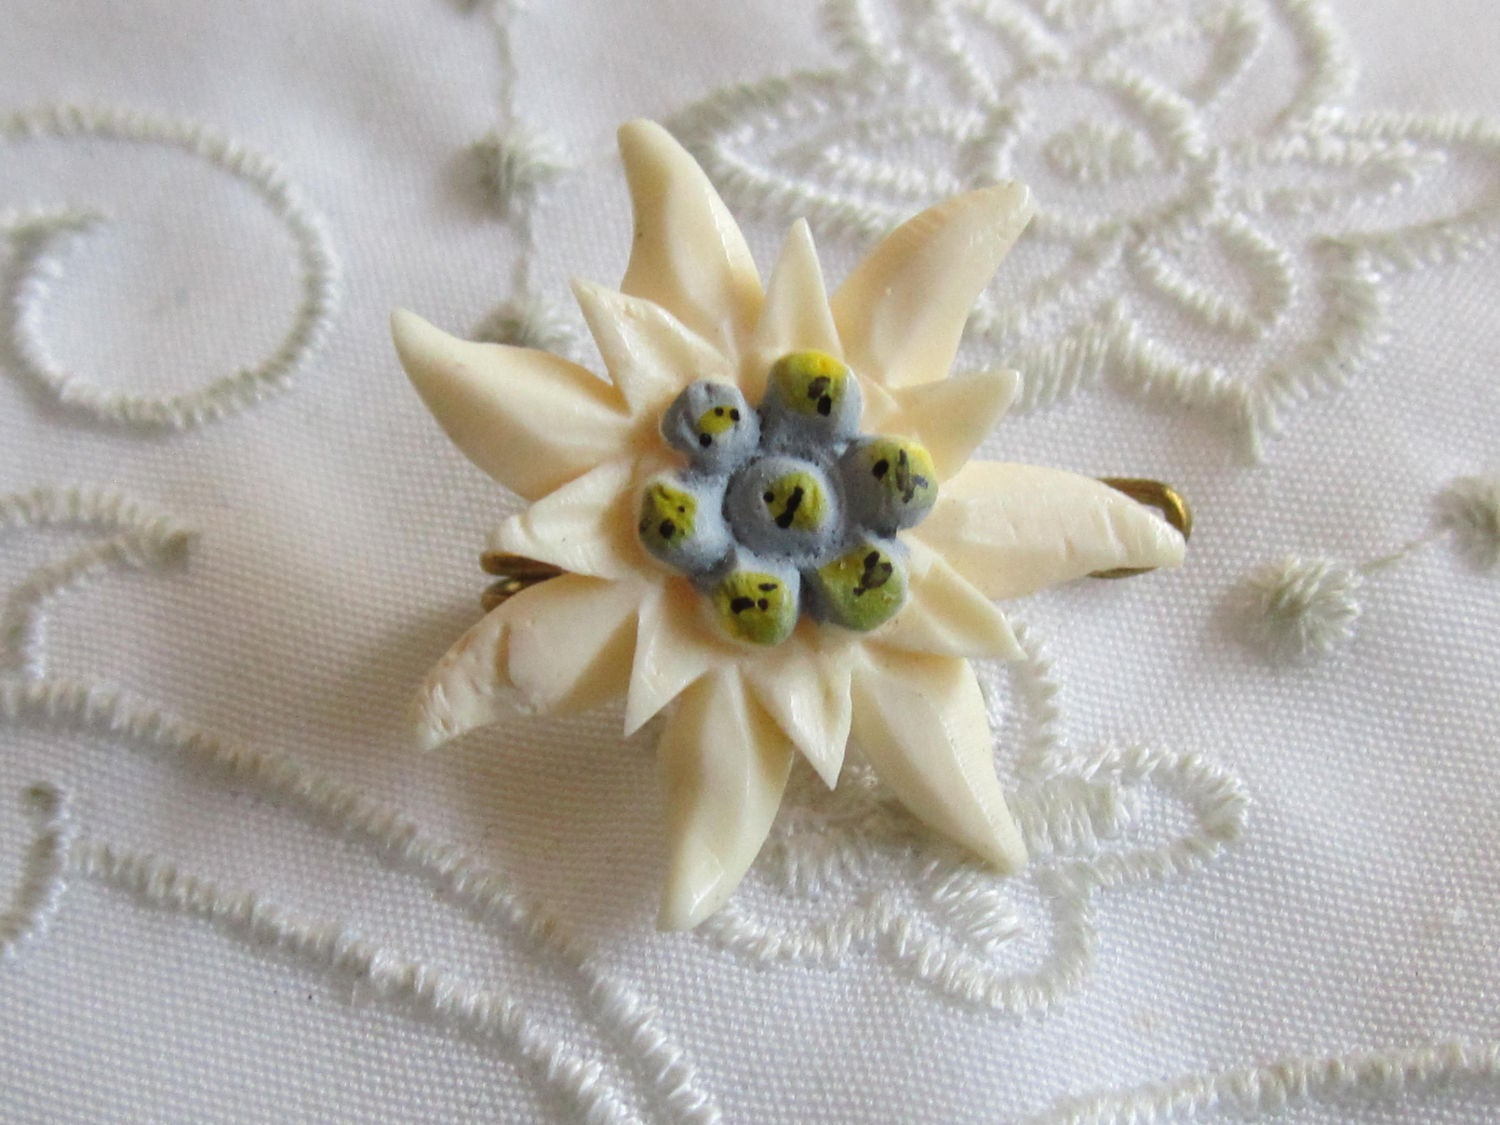 Vintage white china flower with light blue center pin etsy vintage white china flower with light blue center pin izmirmasajfo